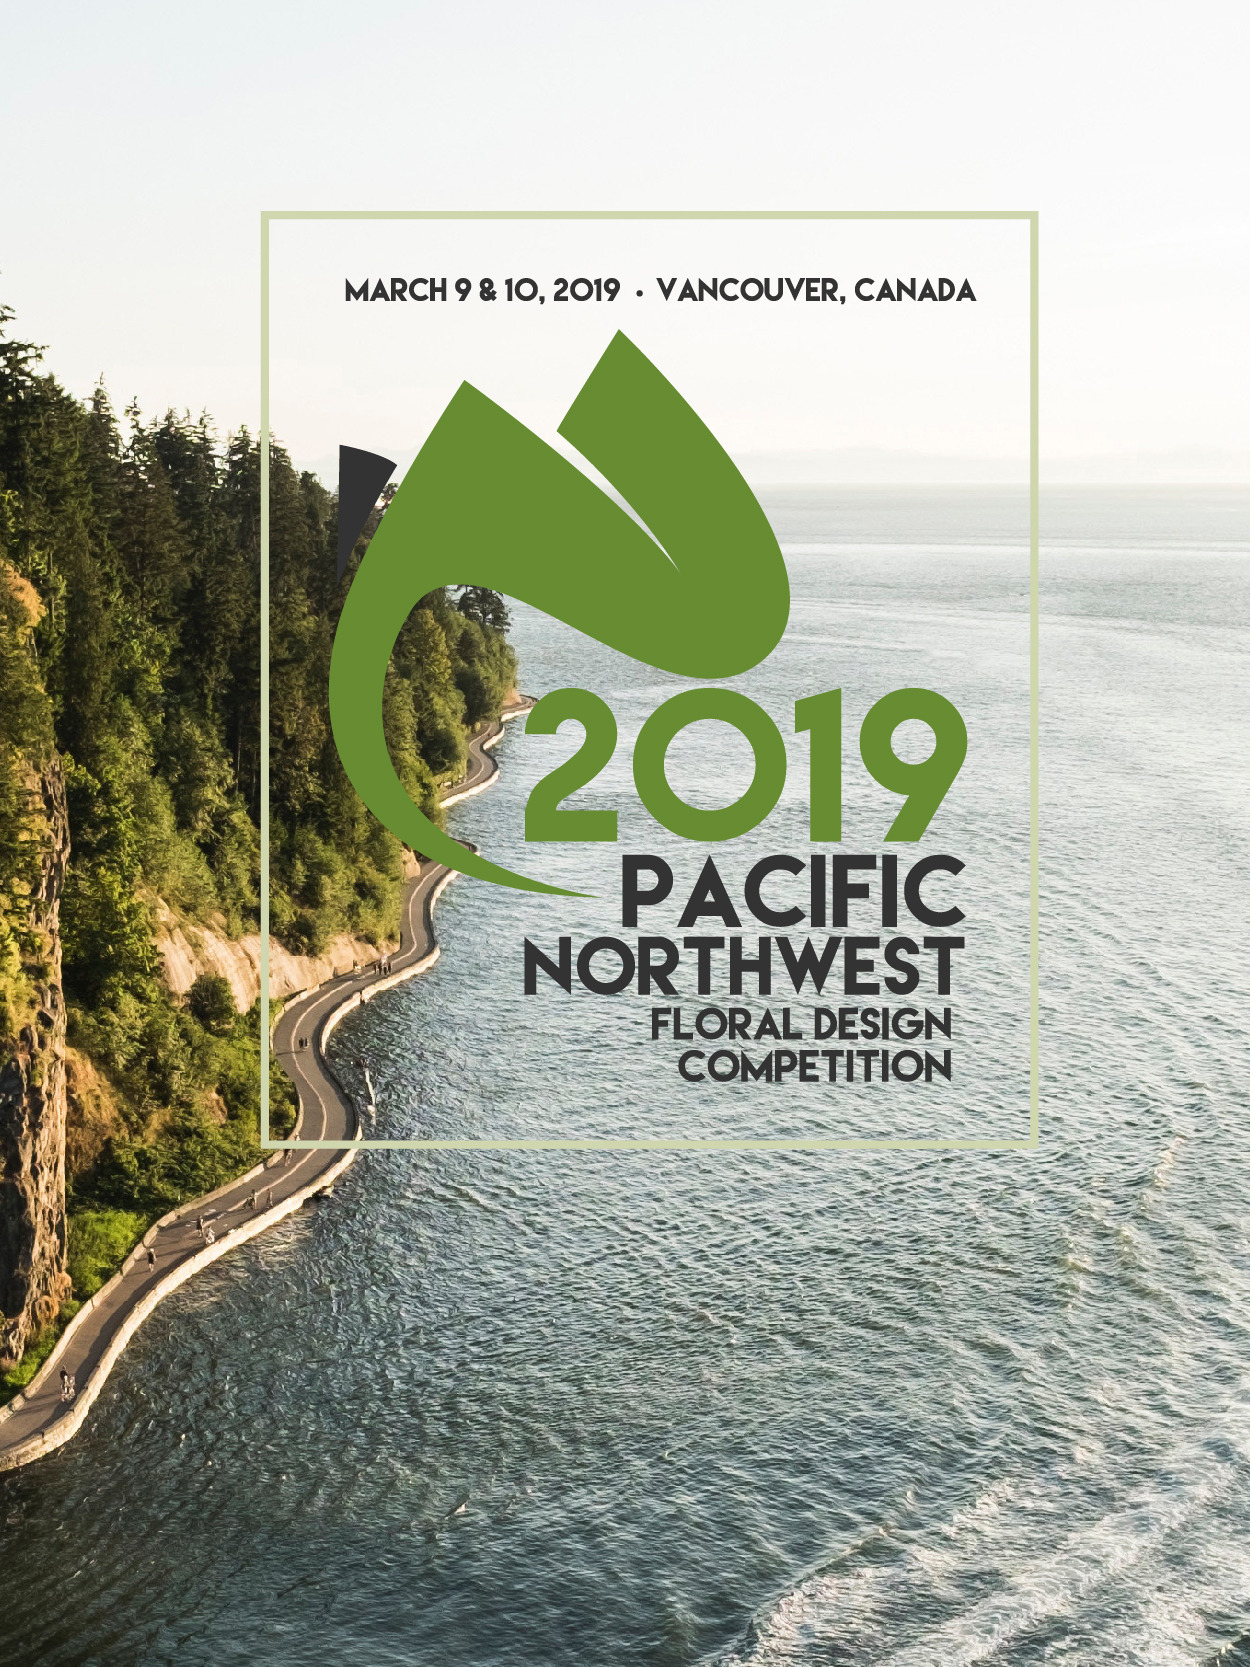 PNWcompetitionVANCOUVER2019-01.jpg